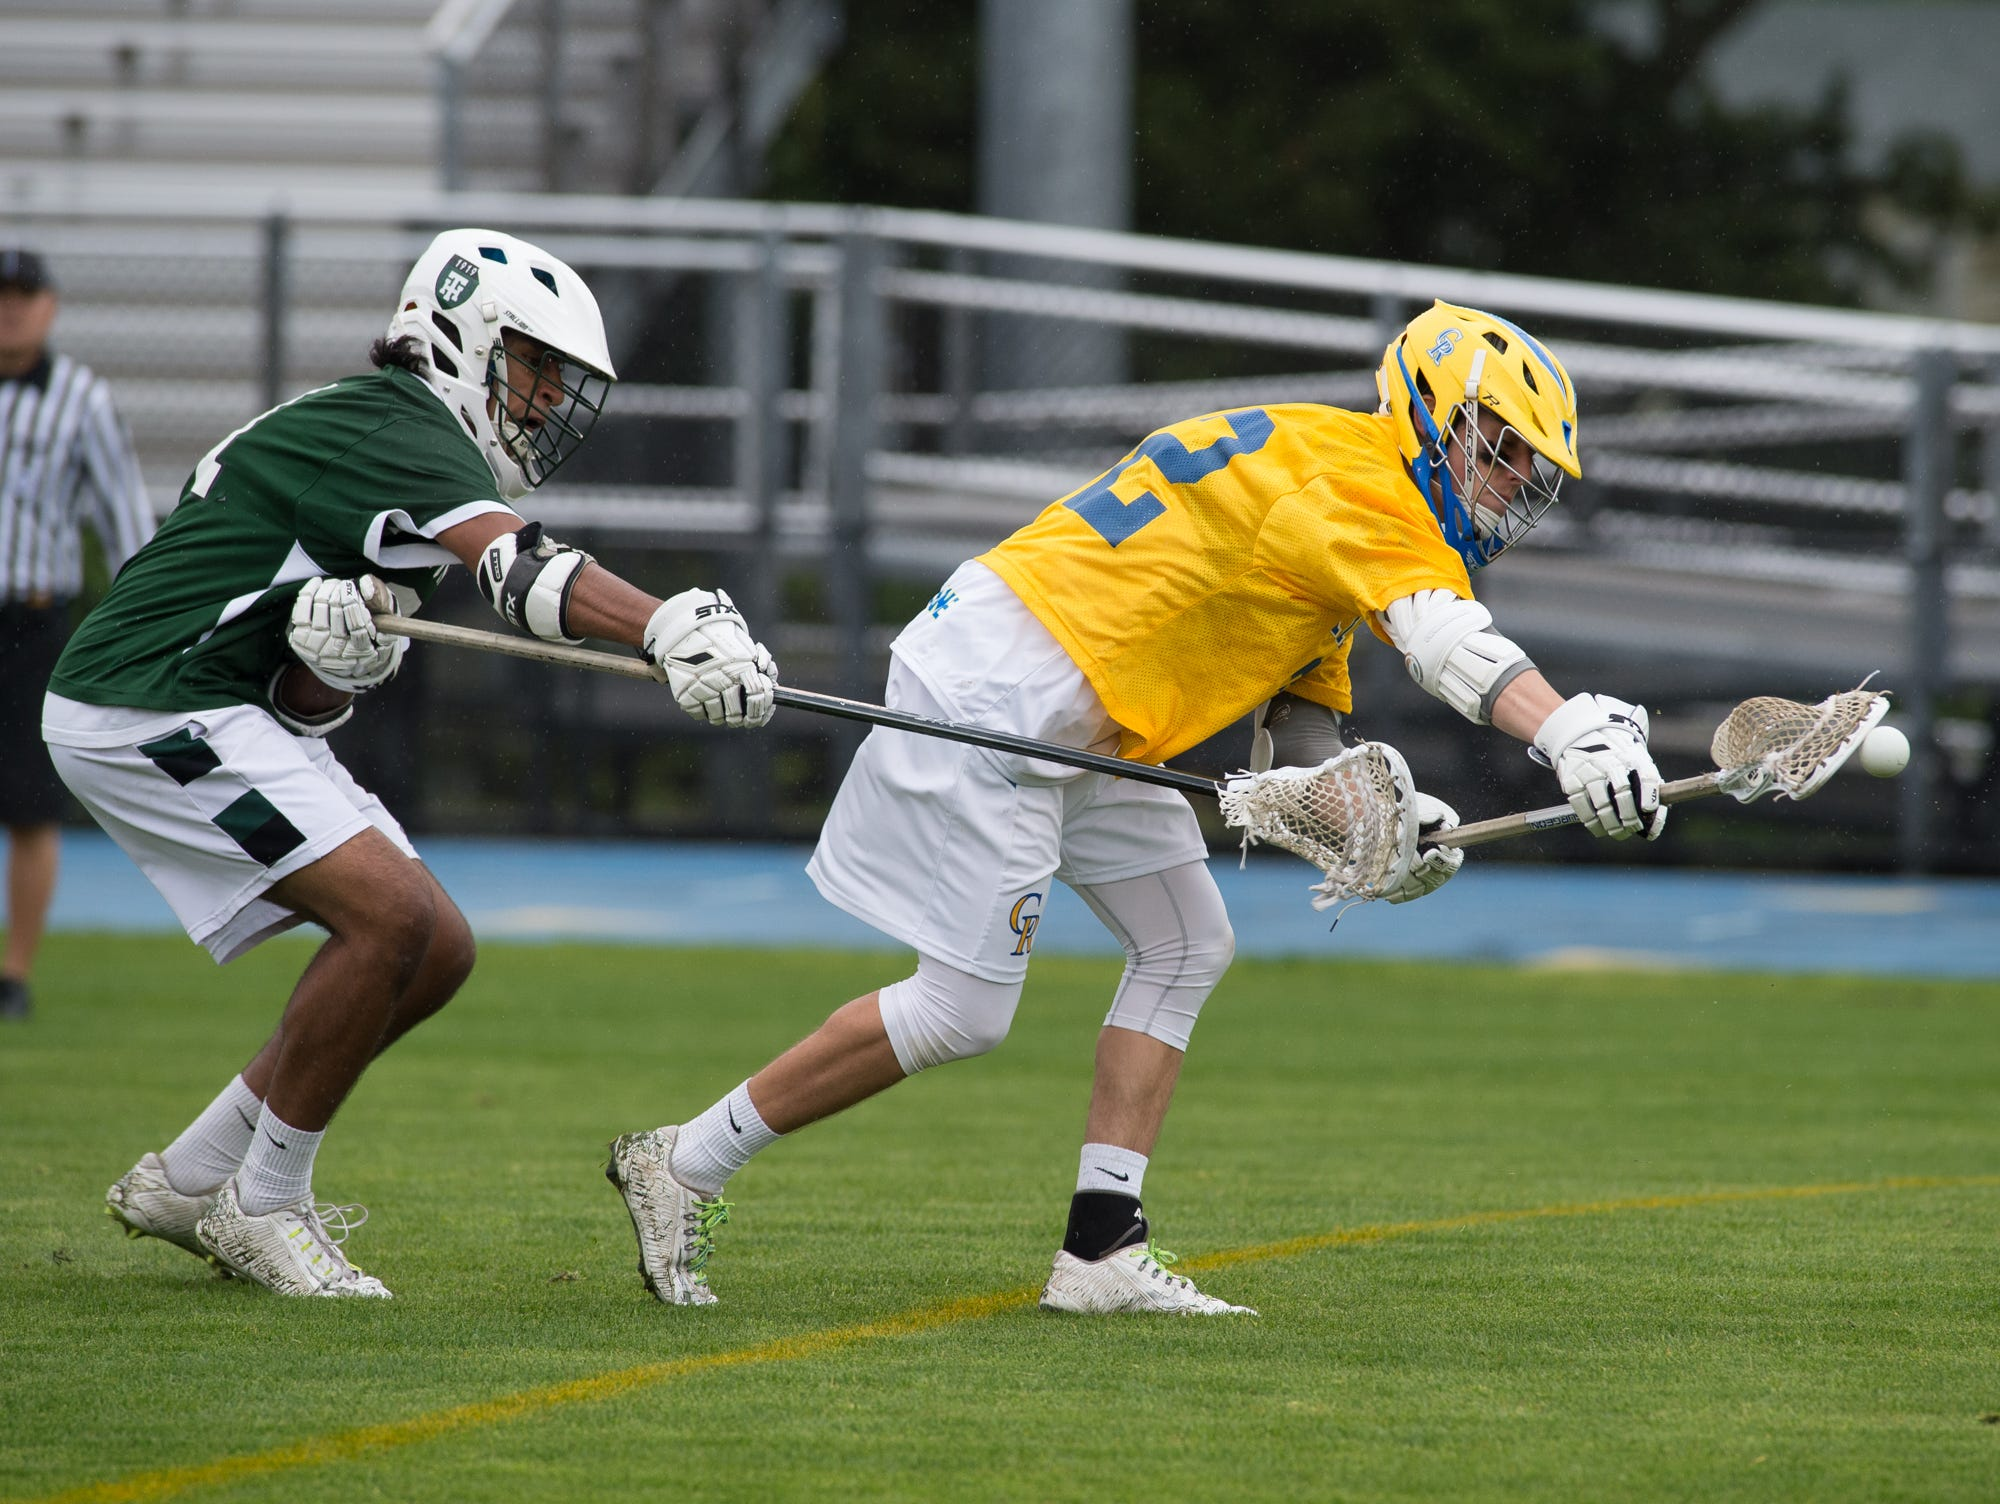 Tower Hill's Tej Vaddi (31), left tries to steal the ball from Caesar Rodney's Jacob Pangle (22).